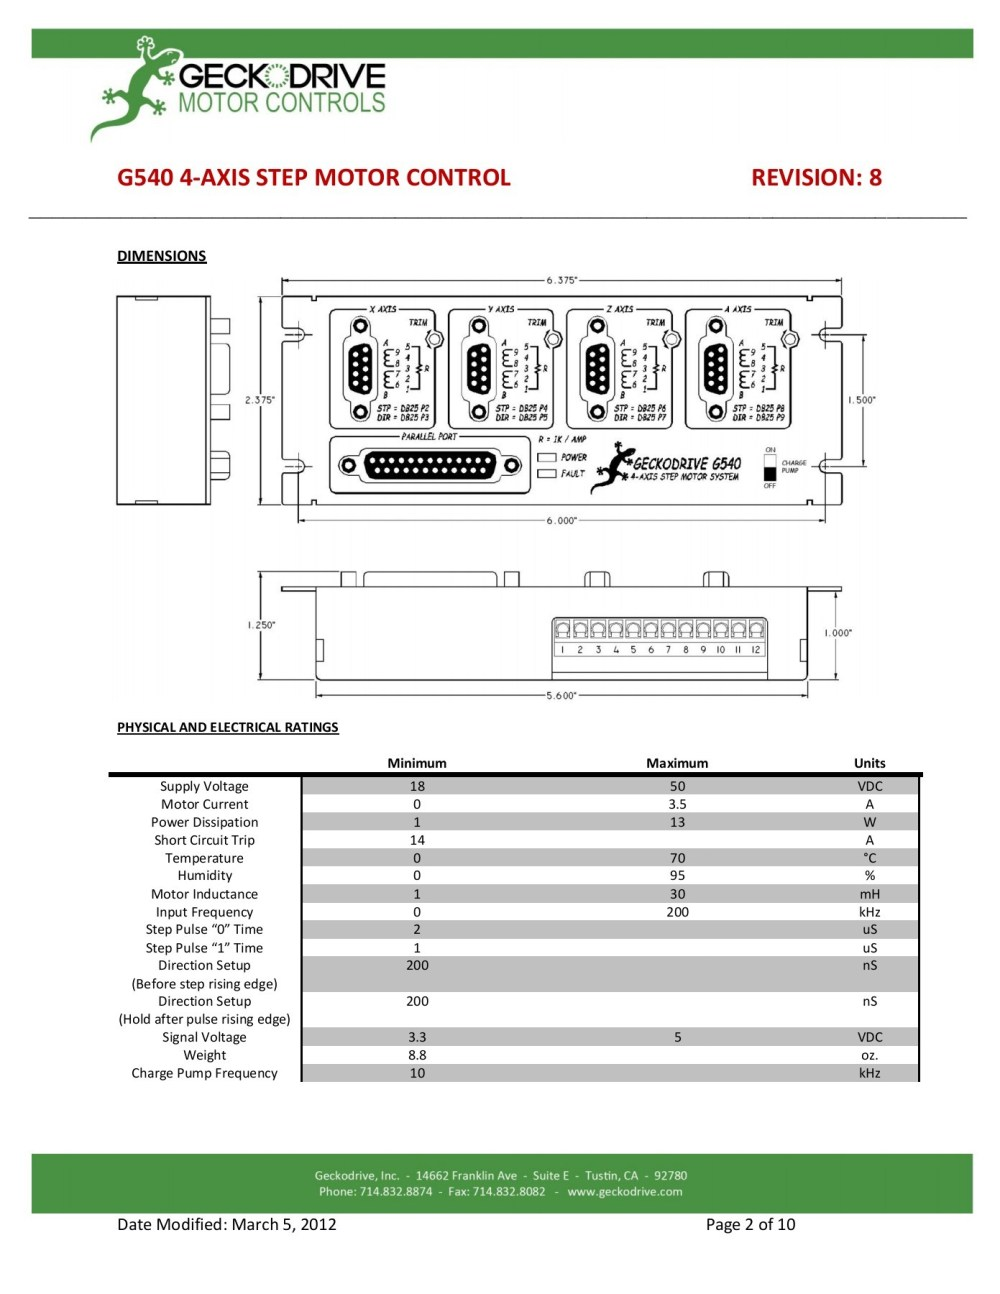 medium resolution of g540 user manual step motor controls pages 1 10 text version fliphtml5